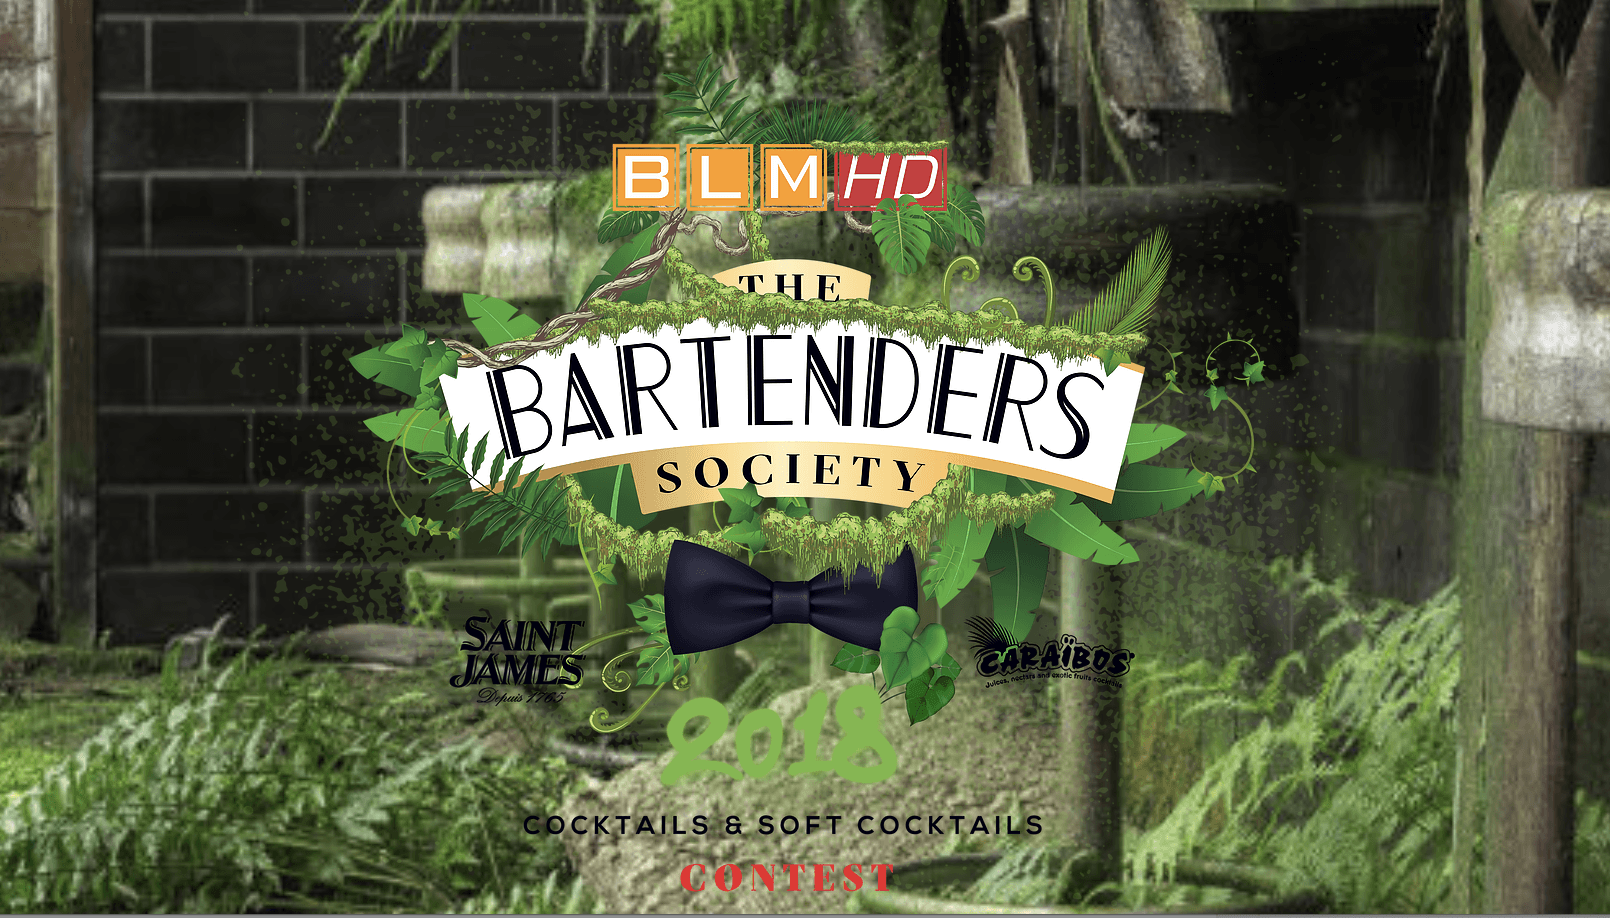 The Bartenders Society logo contest